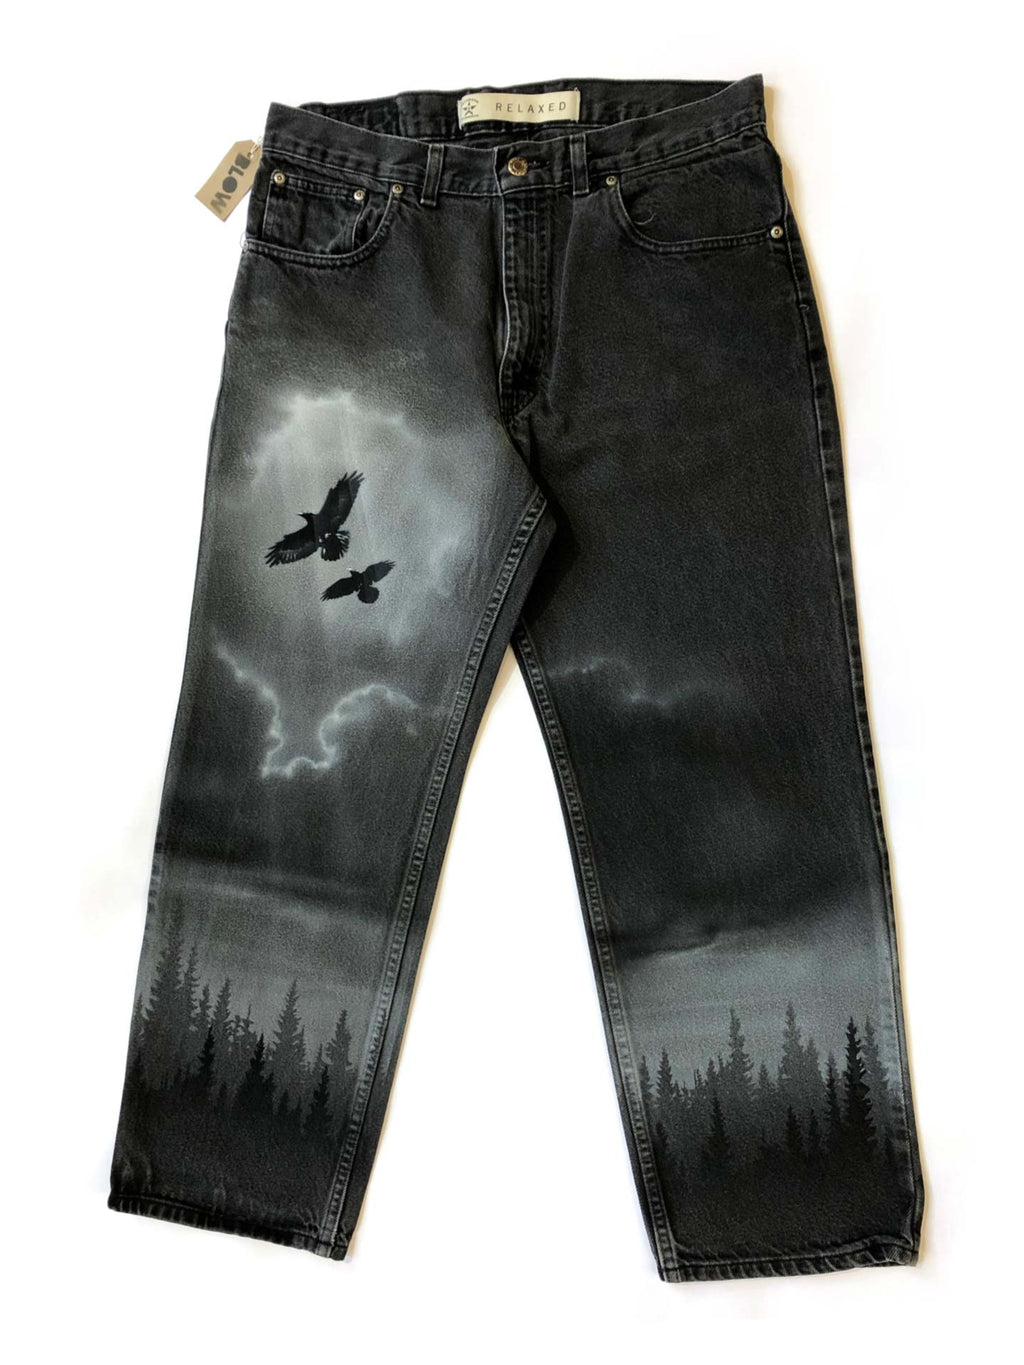 WINTER DAWN - Upcycled black denim jeans - BLOW London